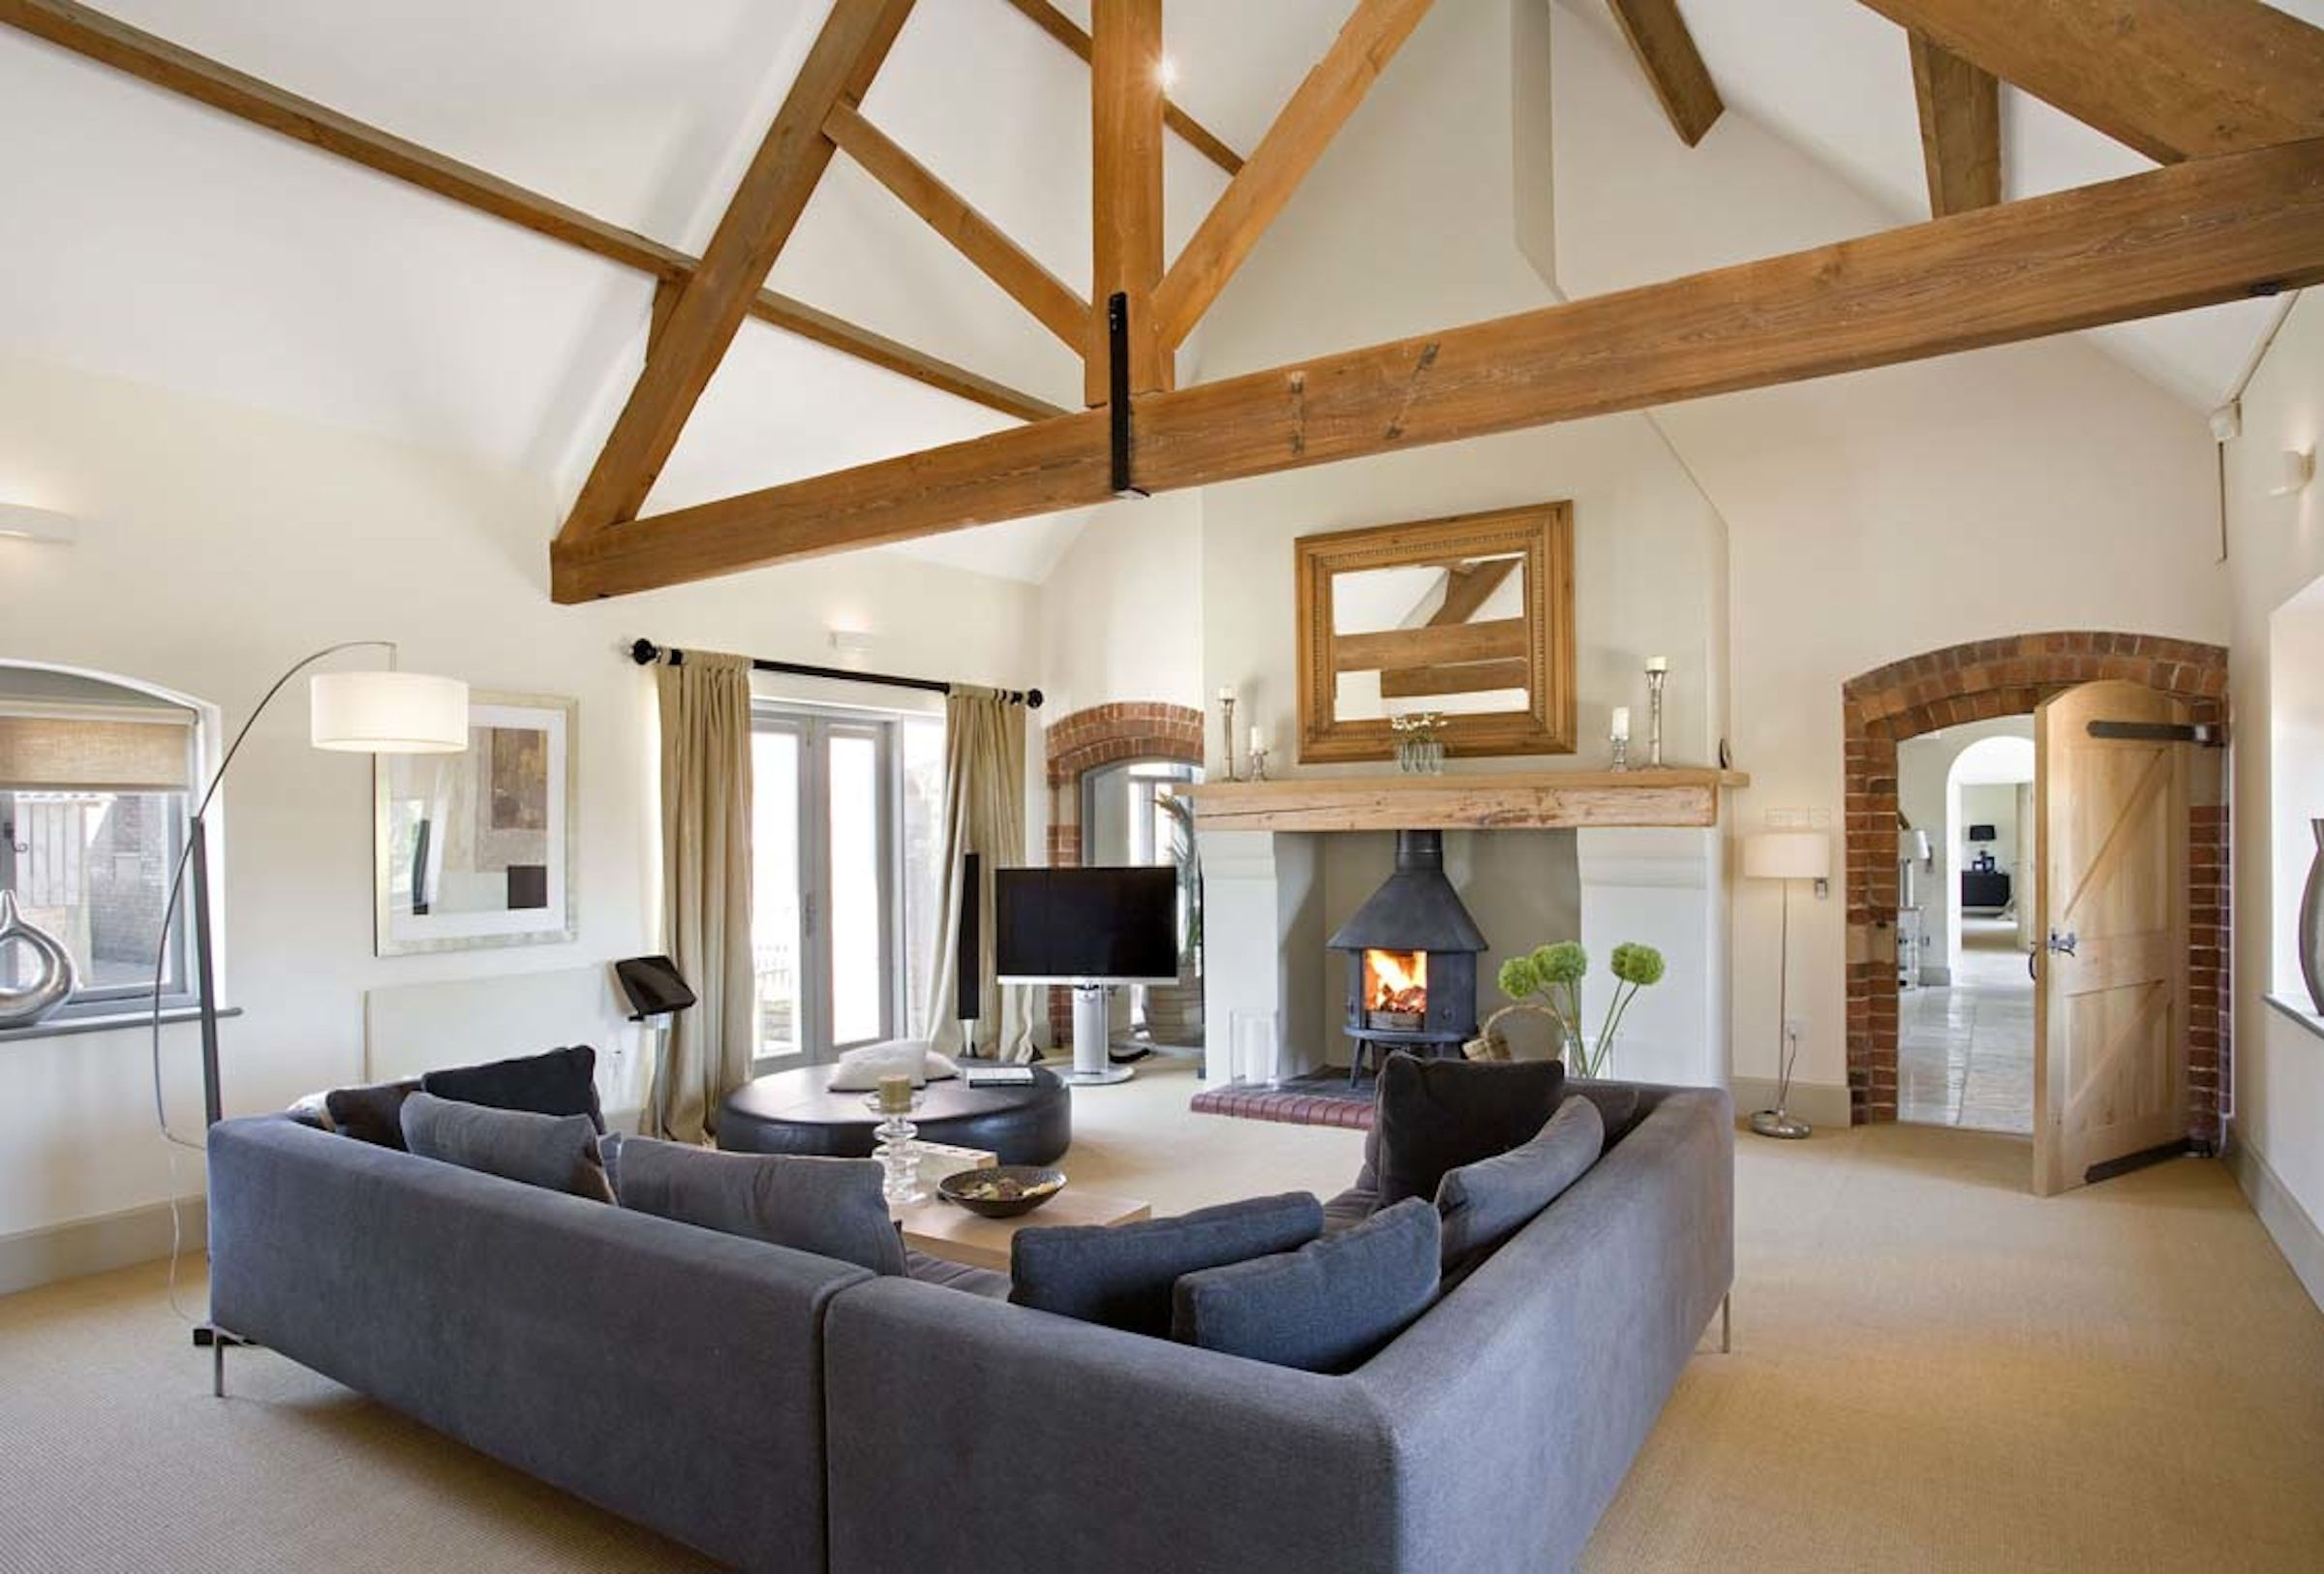 Stables conversion interior google search home for Home interior design ideas uk